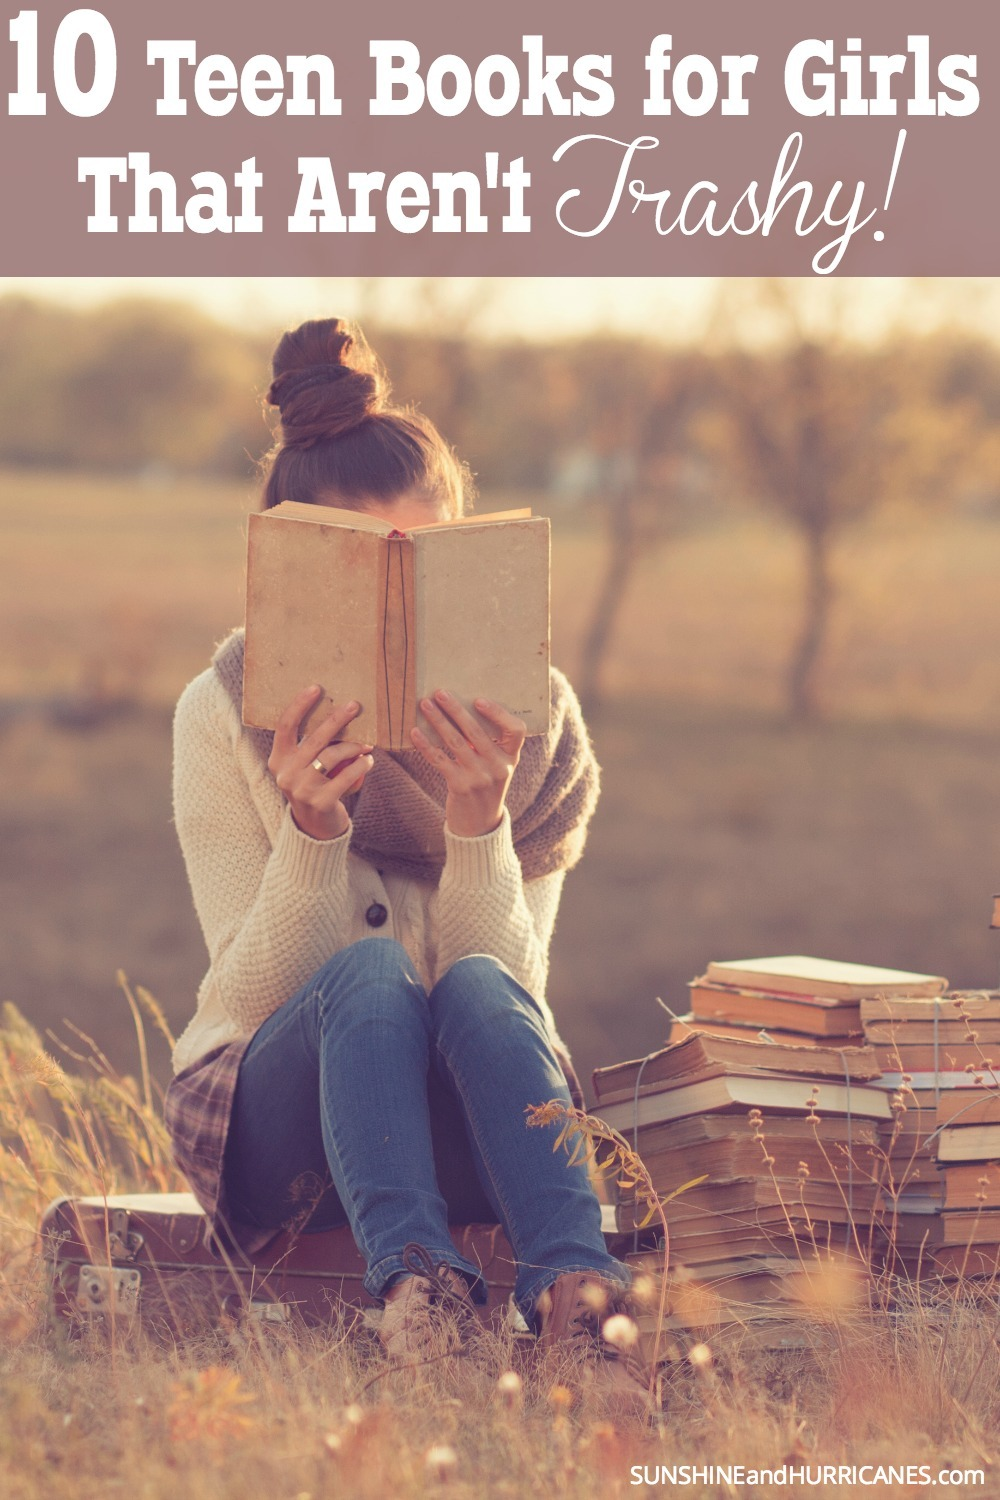 Are you tired of your daughter reading trashy books? We all know there is a time and place for a light beach read or a mindless novel to get lost in, but sometimes our girls need a little substance too! Here are 10 quality books all suggested for teen girls from a teen girl. 10 books for girls that aren't trashy . SunshineandHurricanes.com